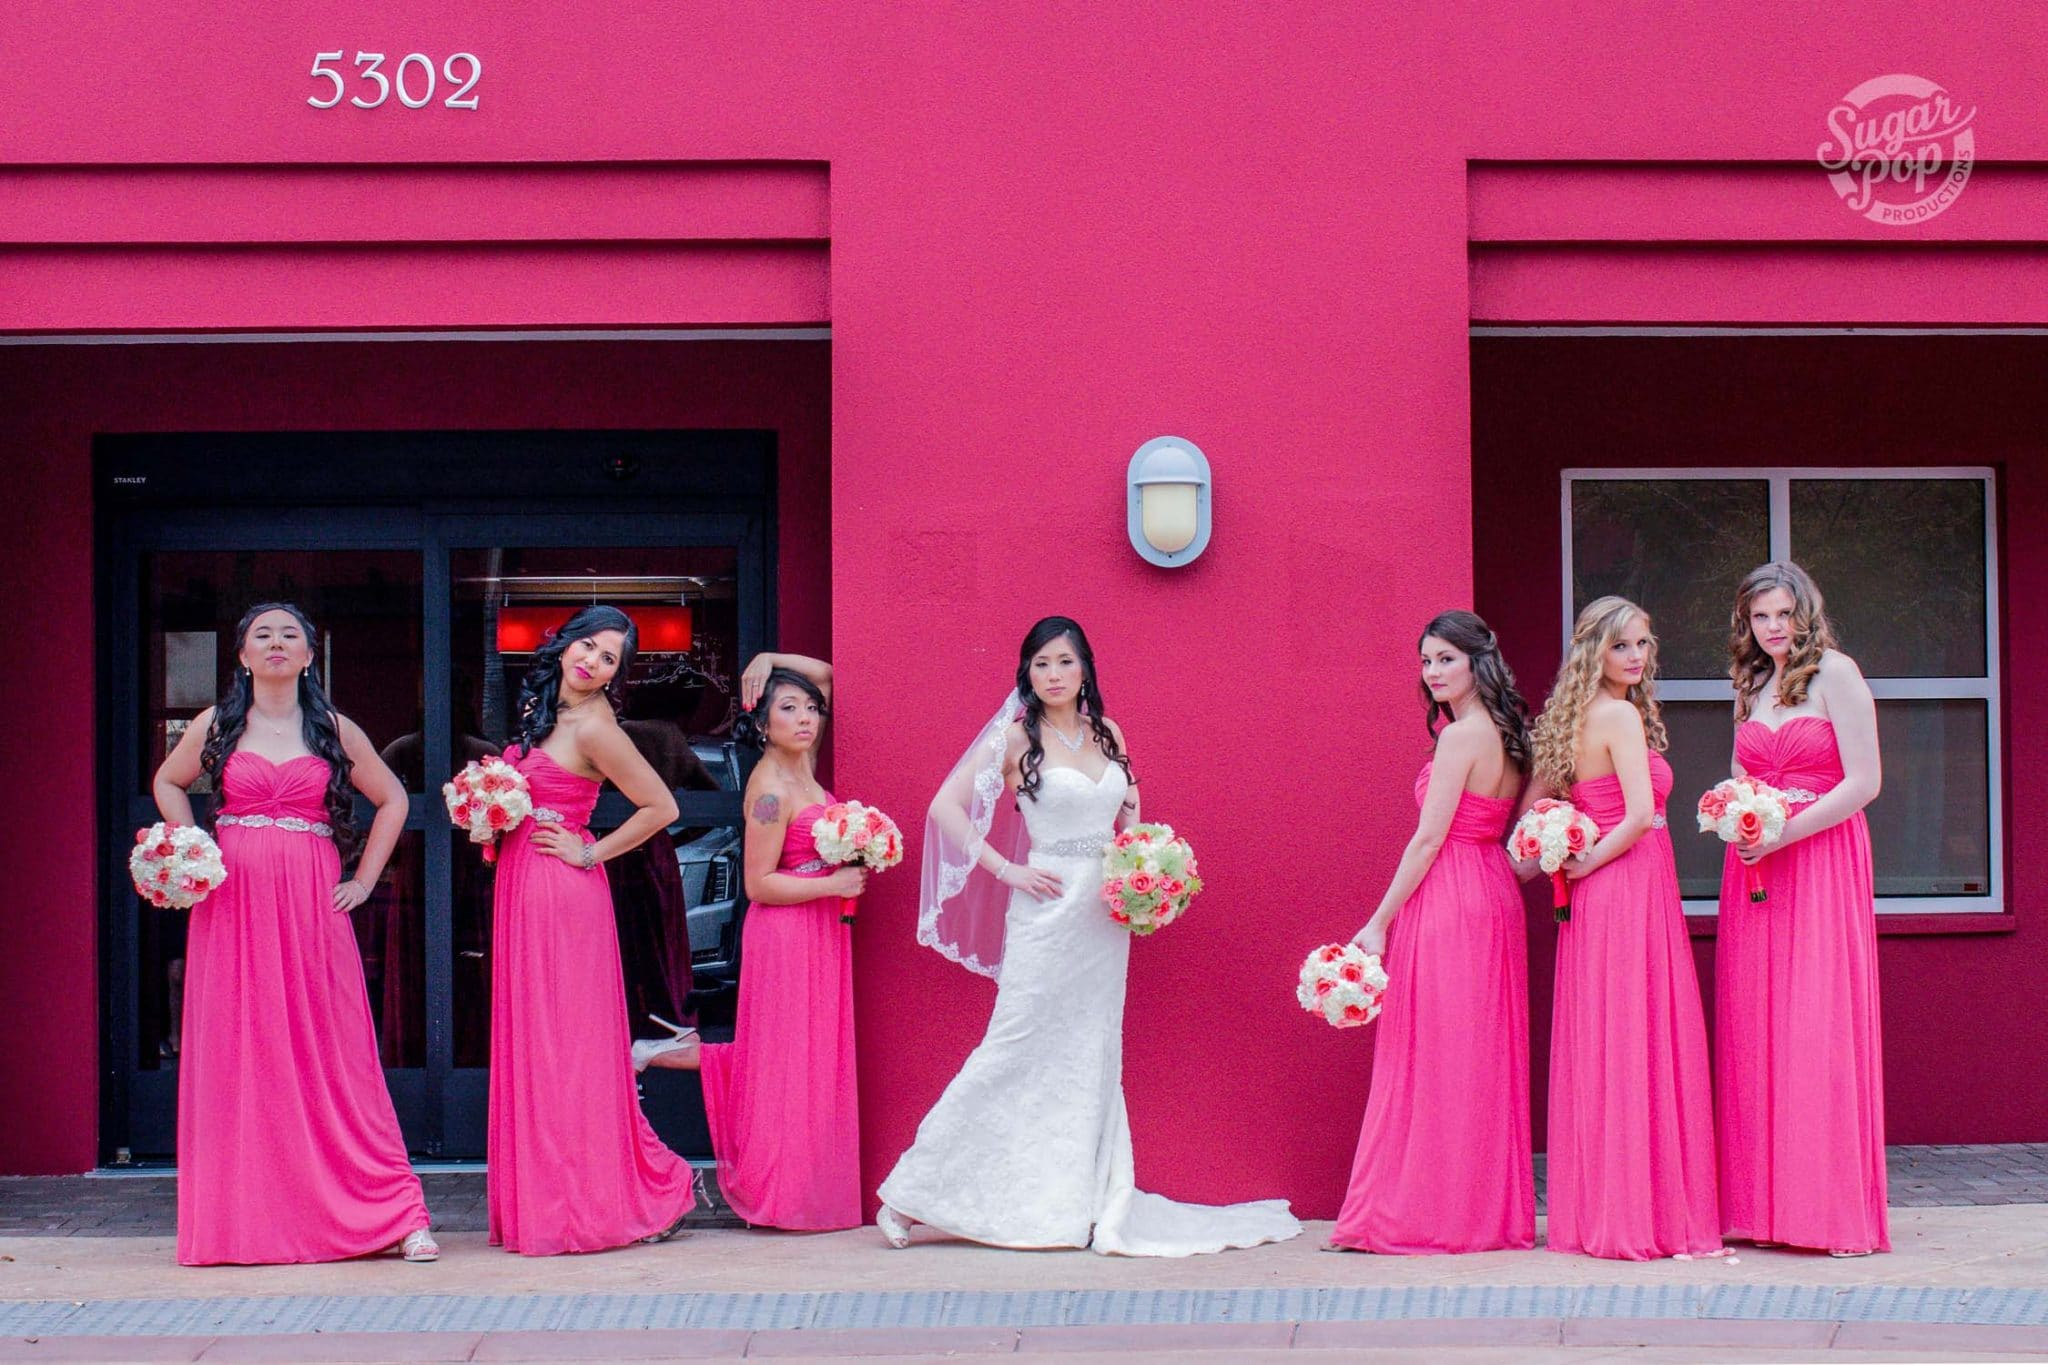 Sugar Pop Productions - bride with bridesmaids in pink standing in front of pink building